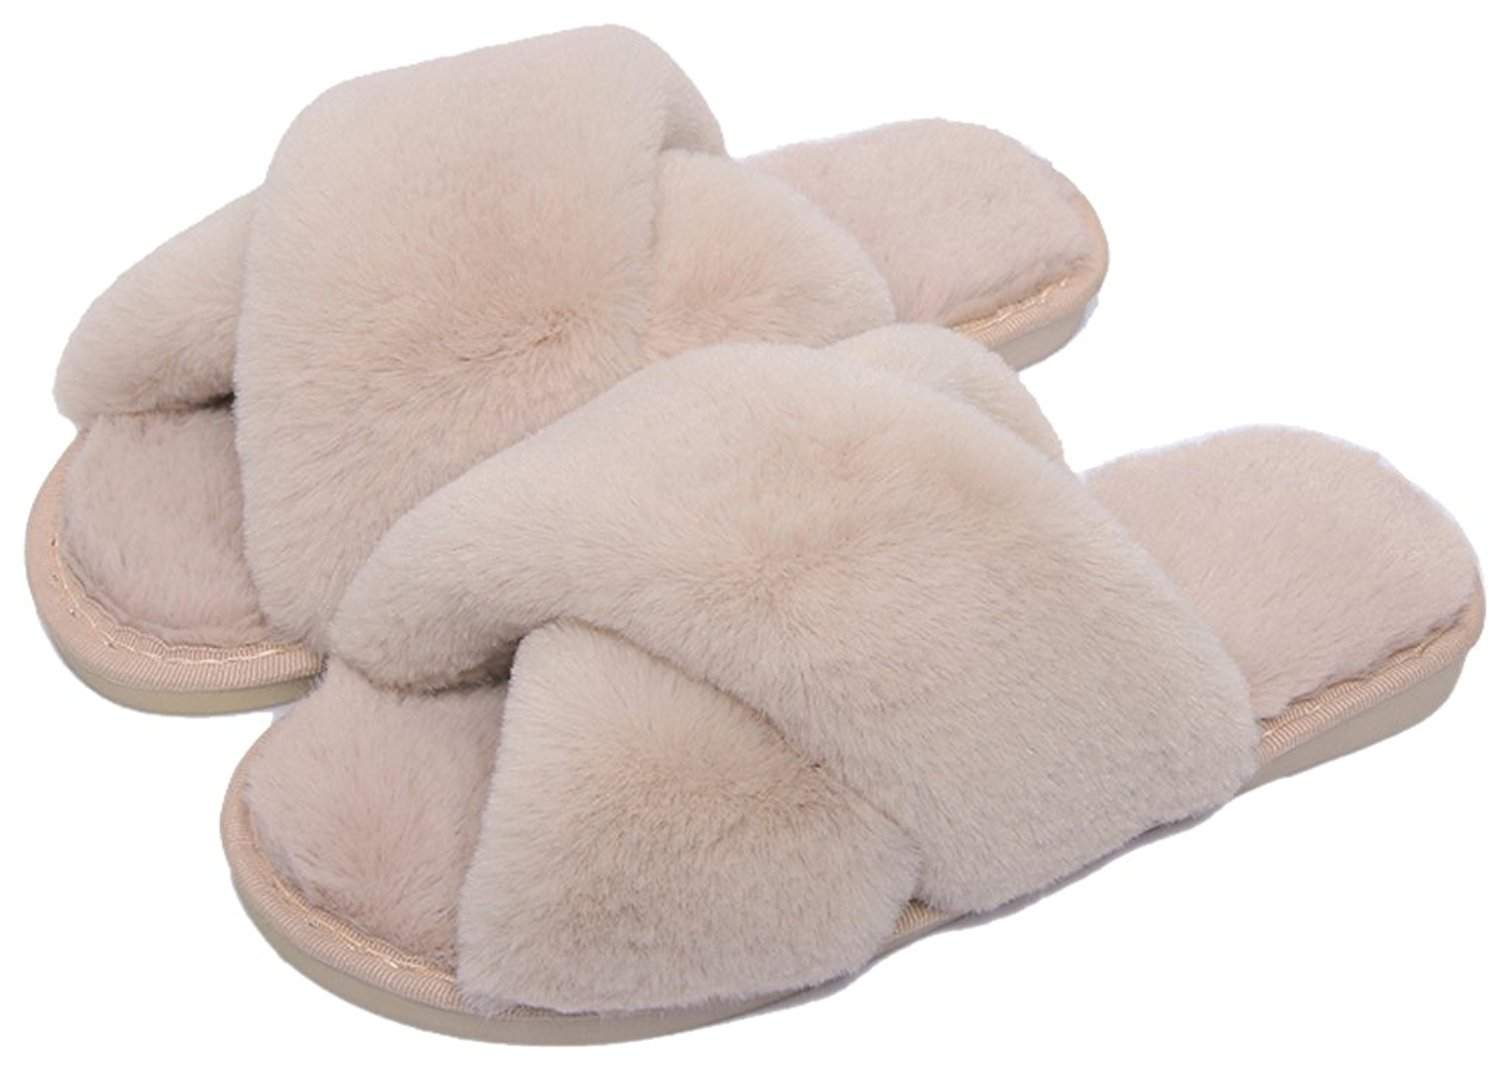 48e63939dad Get Quotations · FreLO Women Plush Crossed Upper Fluffy Slippers Cute  Slippers